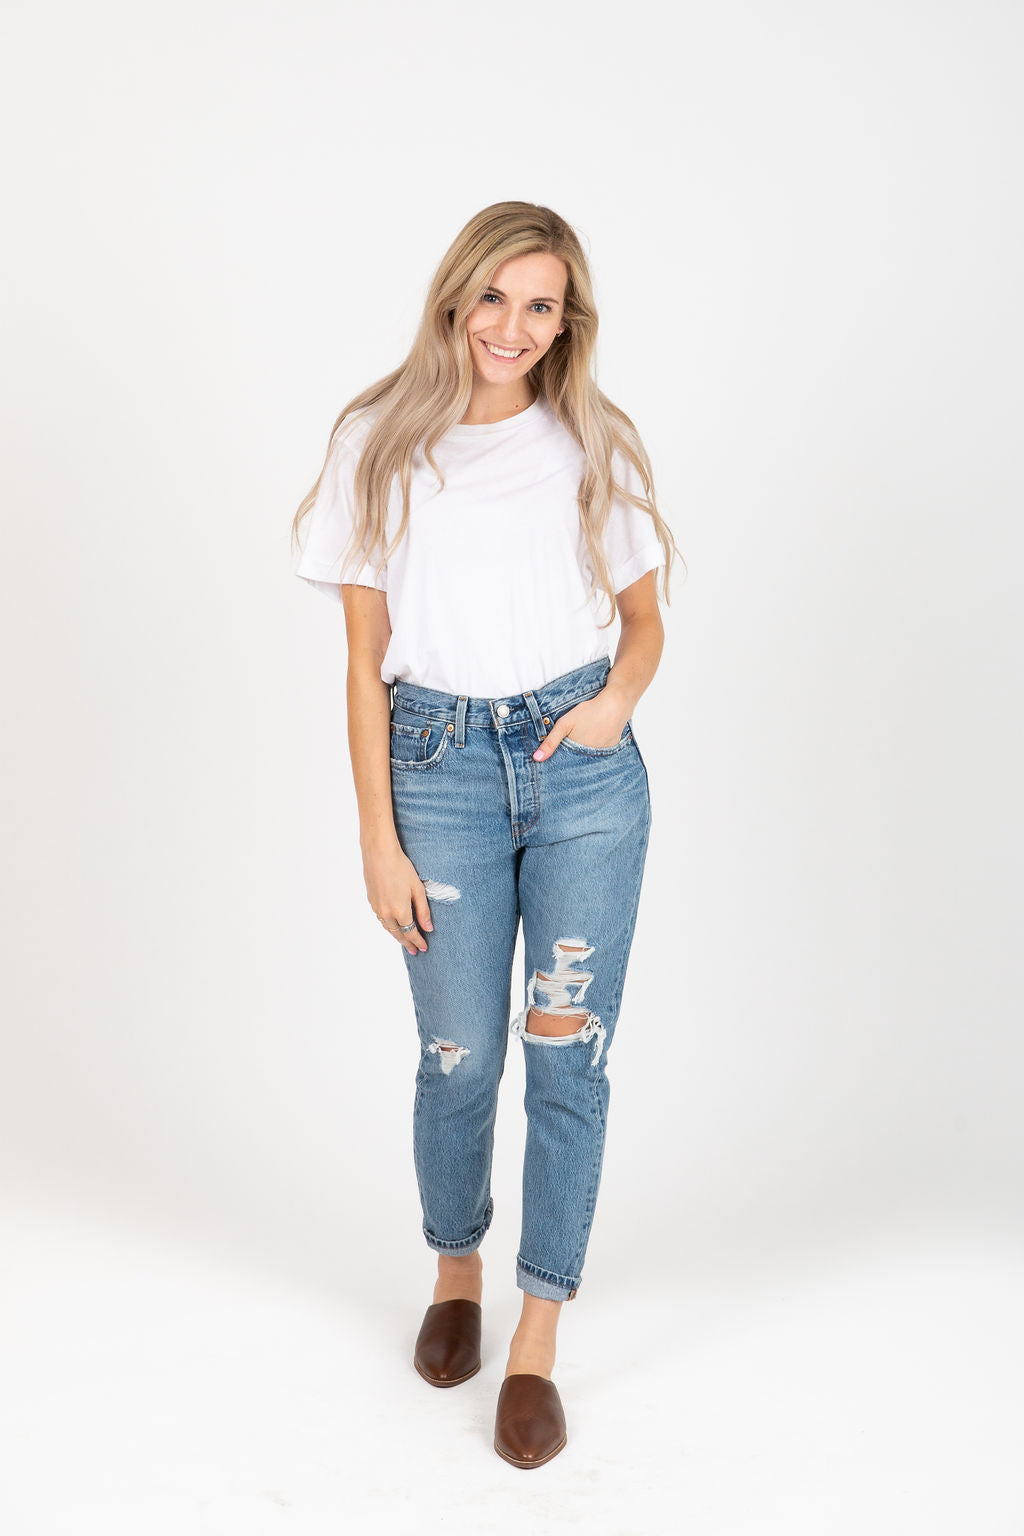 Levi's: 501 Skinny Jeans in Nice As Pie